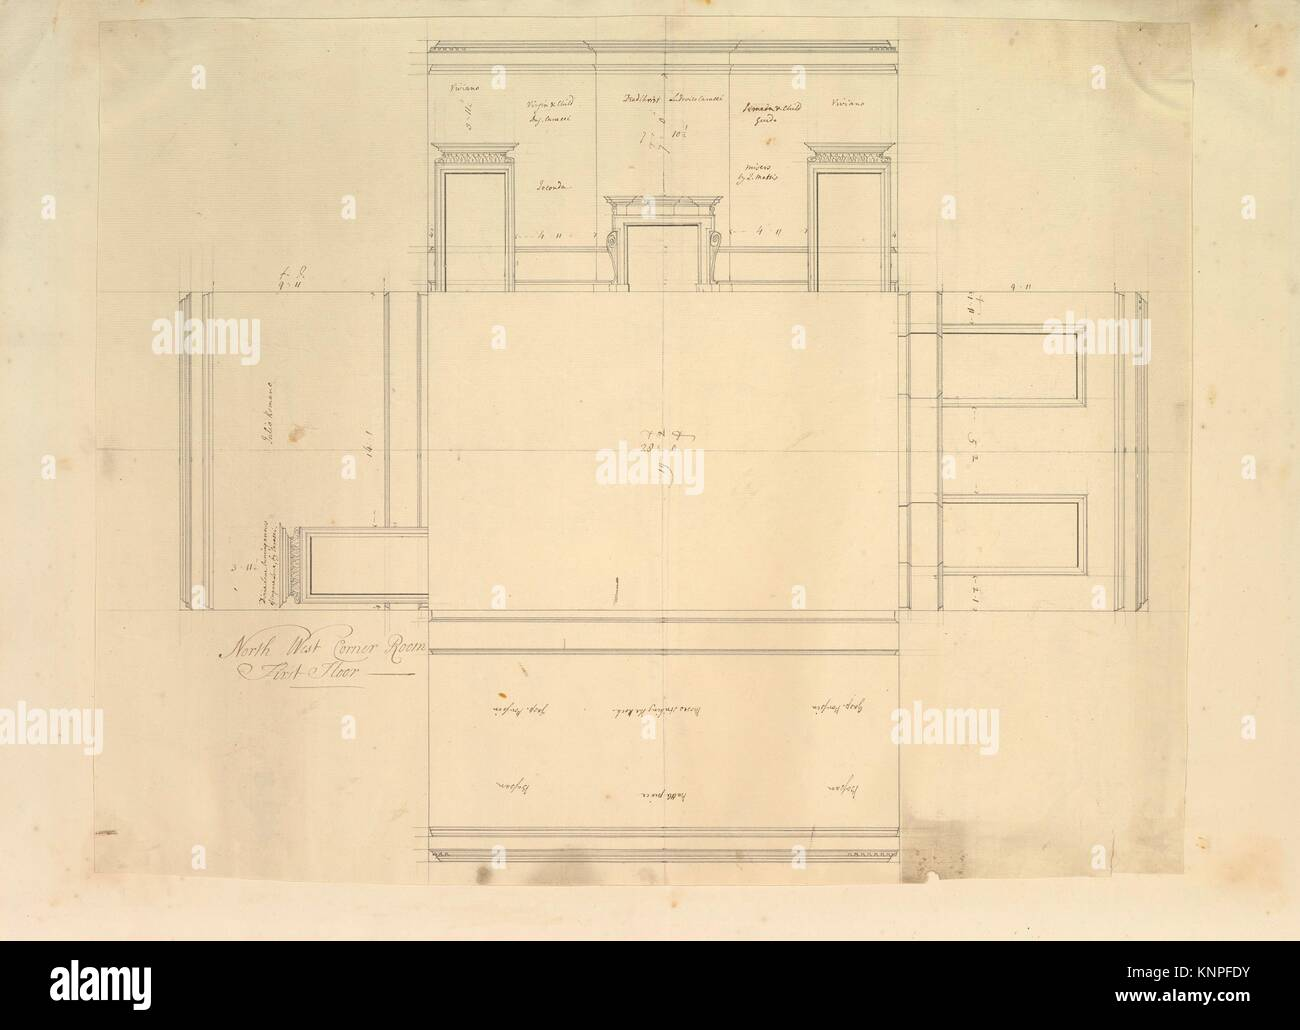 Treasury House 10 Downing Street London Plan Of The End Room Below Stock Photo Alamy